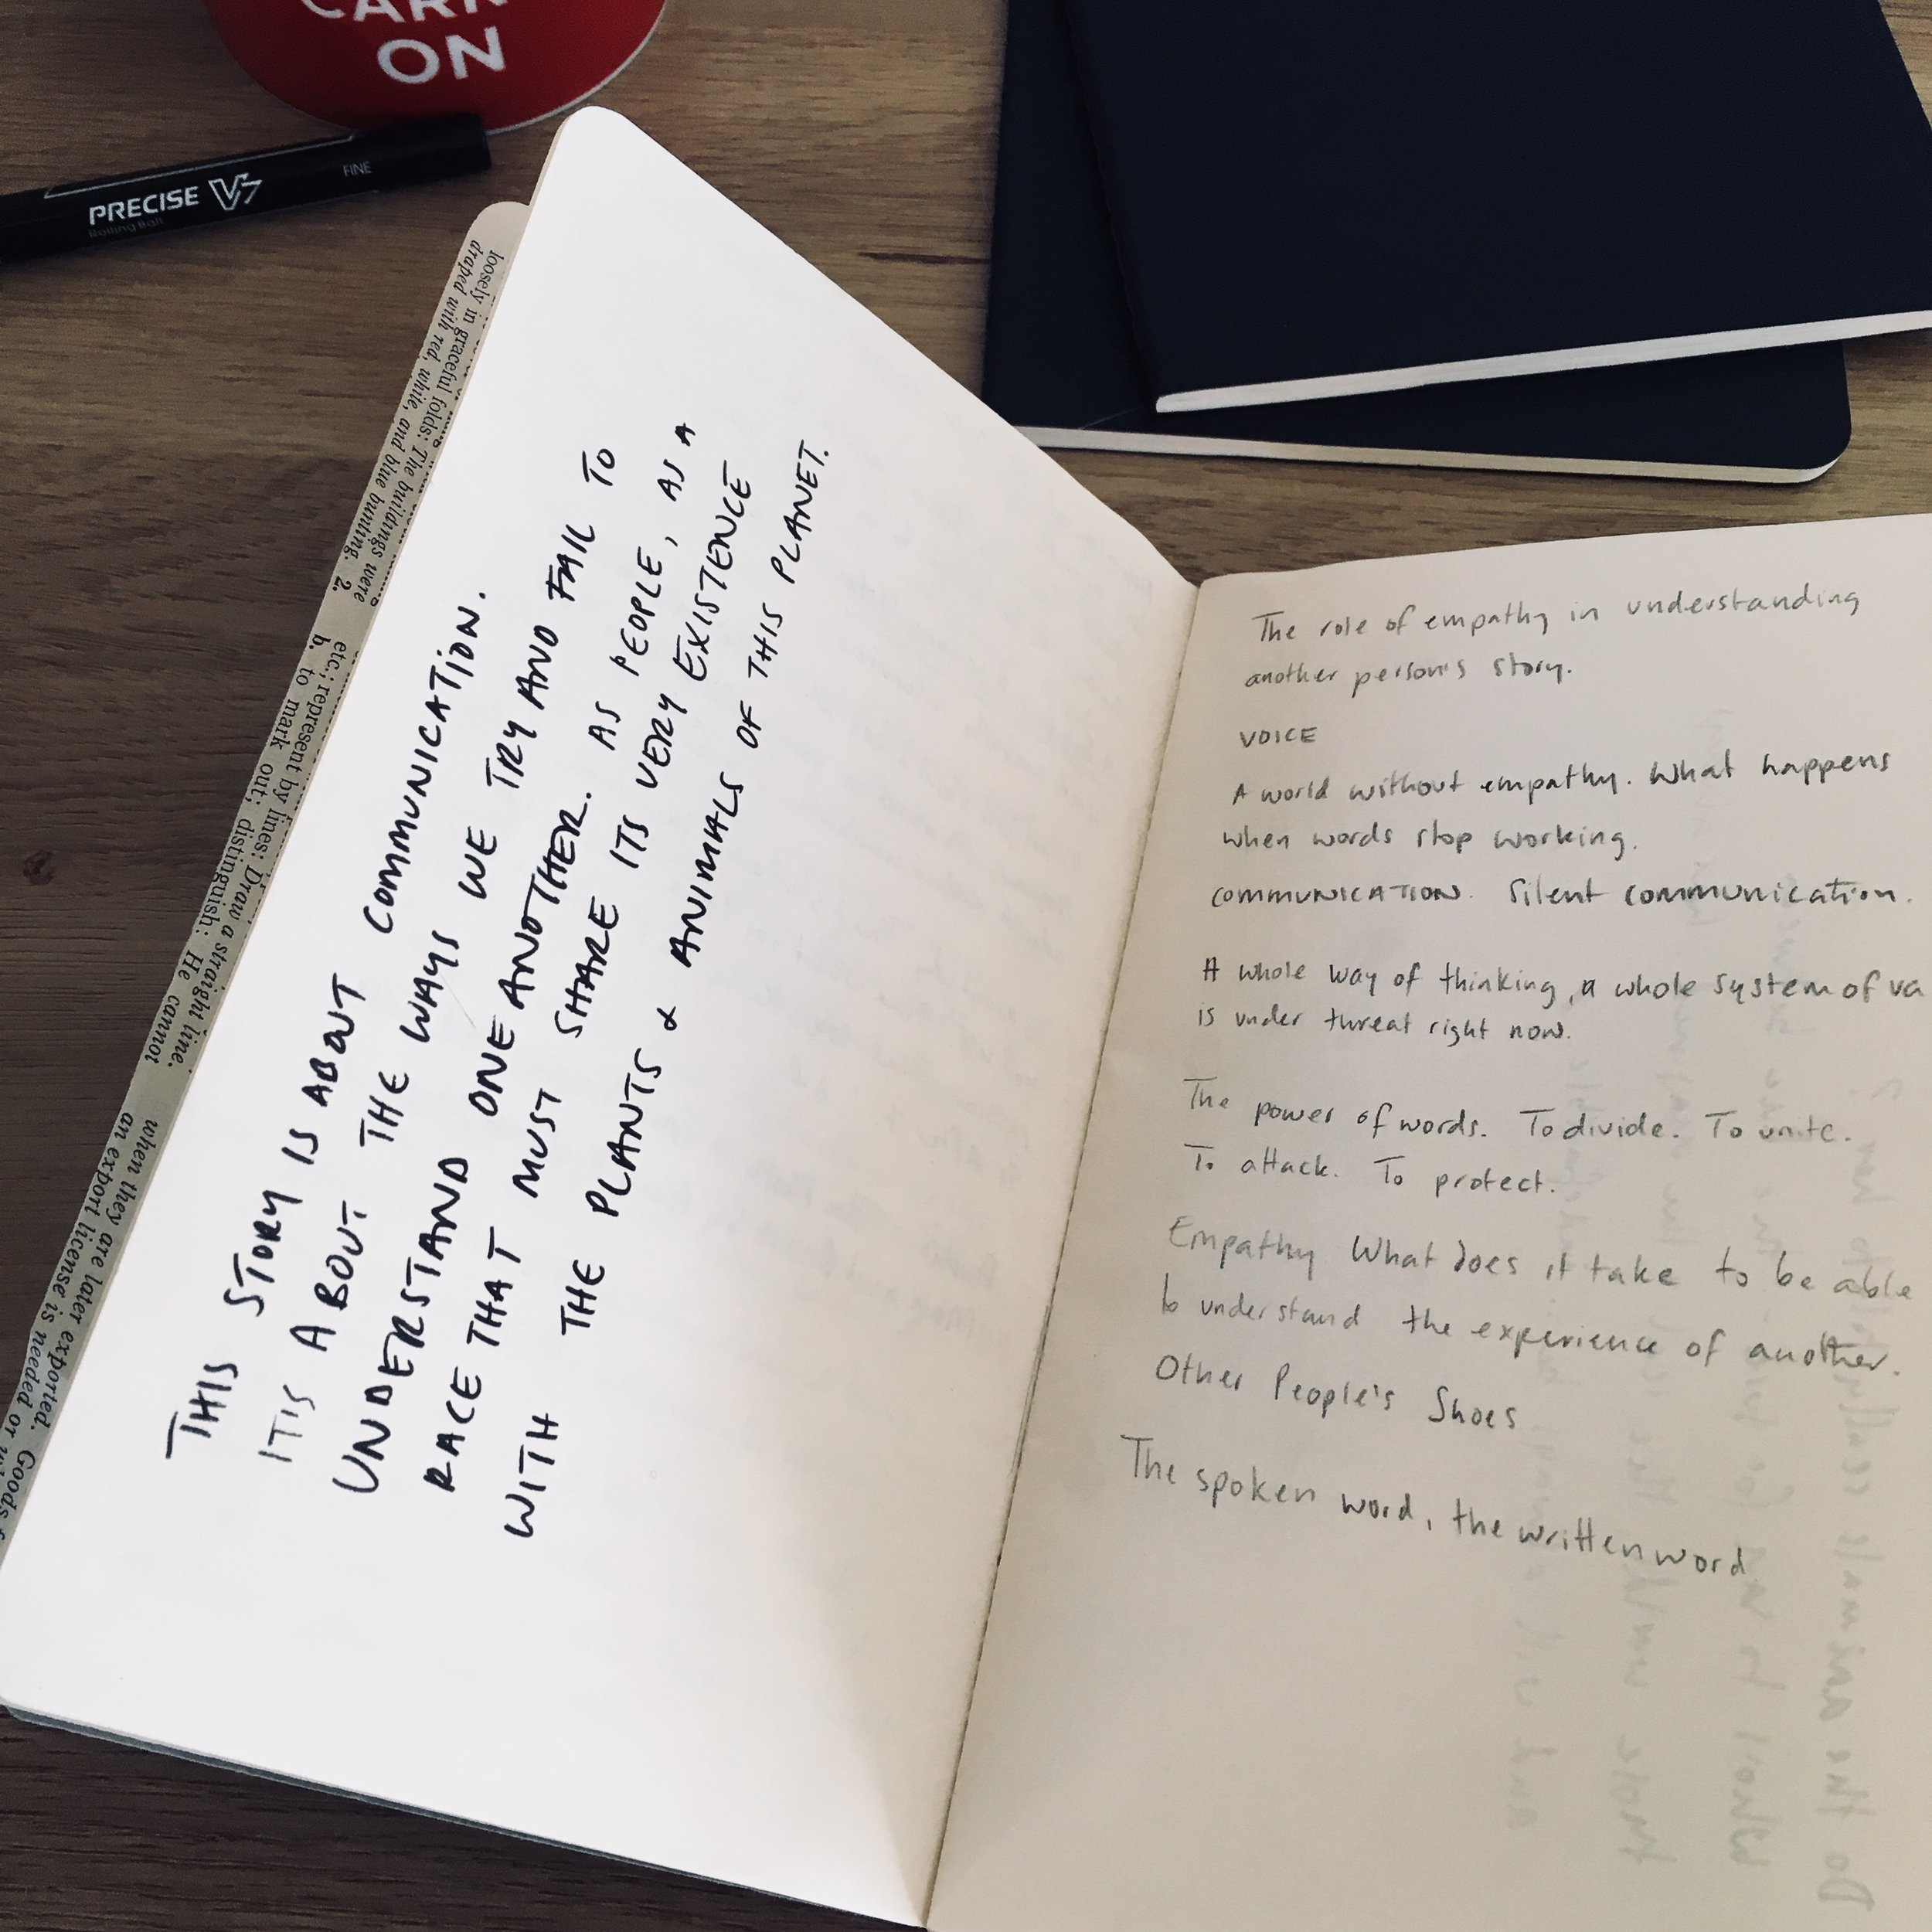 My notebooks are full of messy thoughts, unanswered questions and wild possibilities. Eventually, if I'm lucky, the words coalesce into a kernel, something of an idea, a possible starting point.